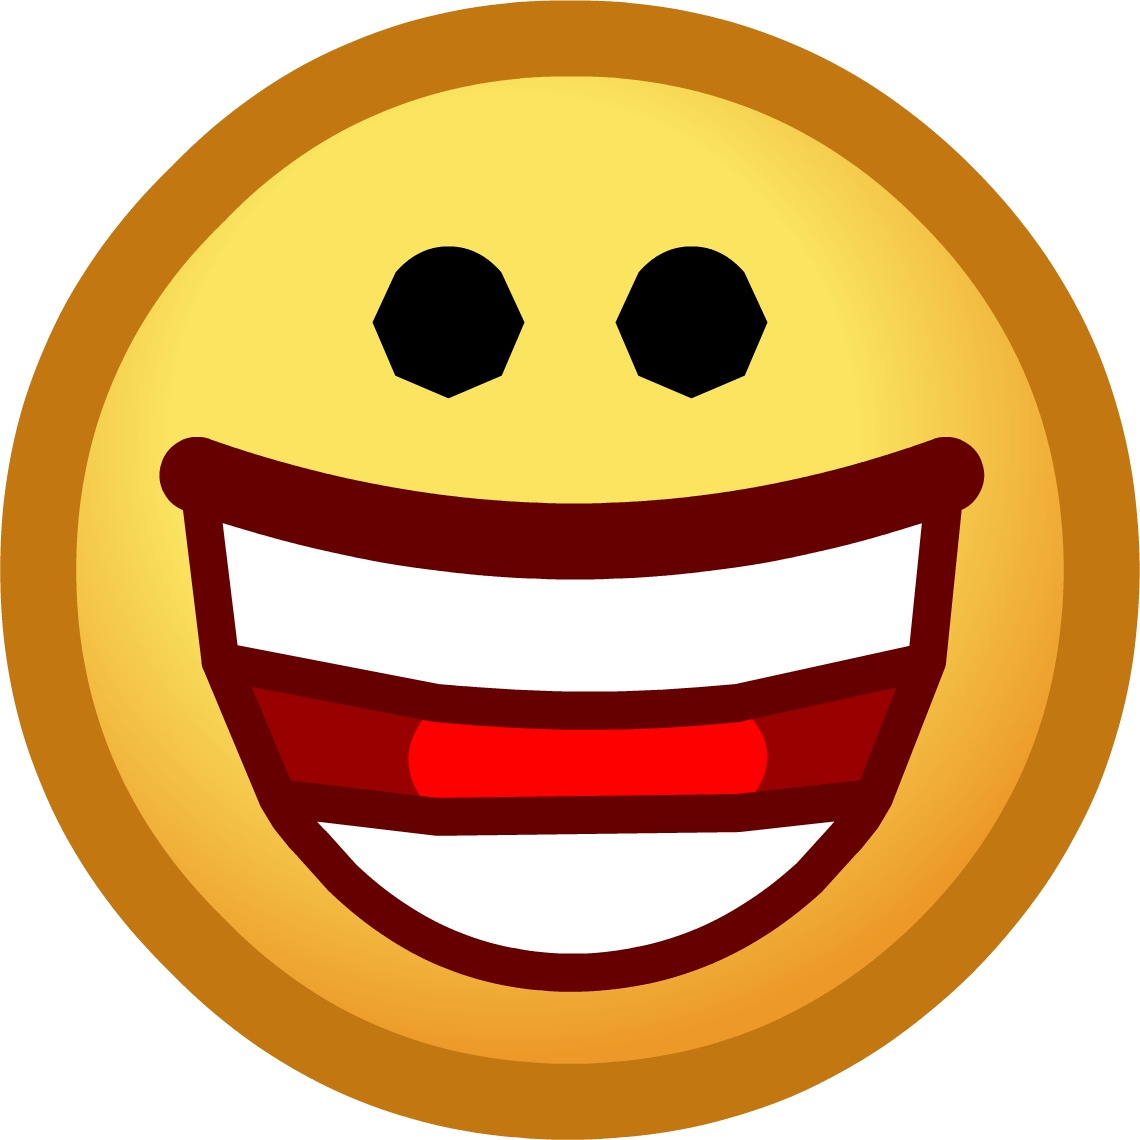 Apple smiley face clipart png freeuse download List of Emoticons | Club Penguin Wiki | FANDOM powered by Wikia png freeuse download